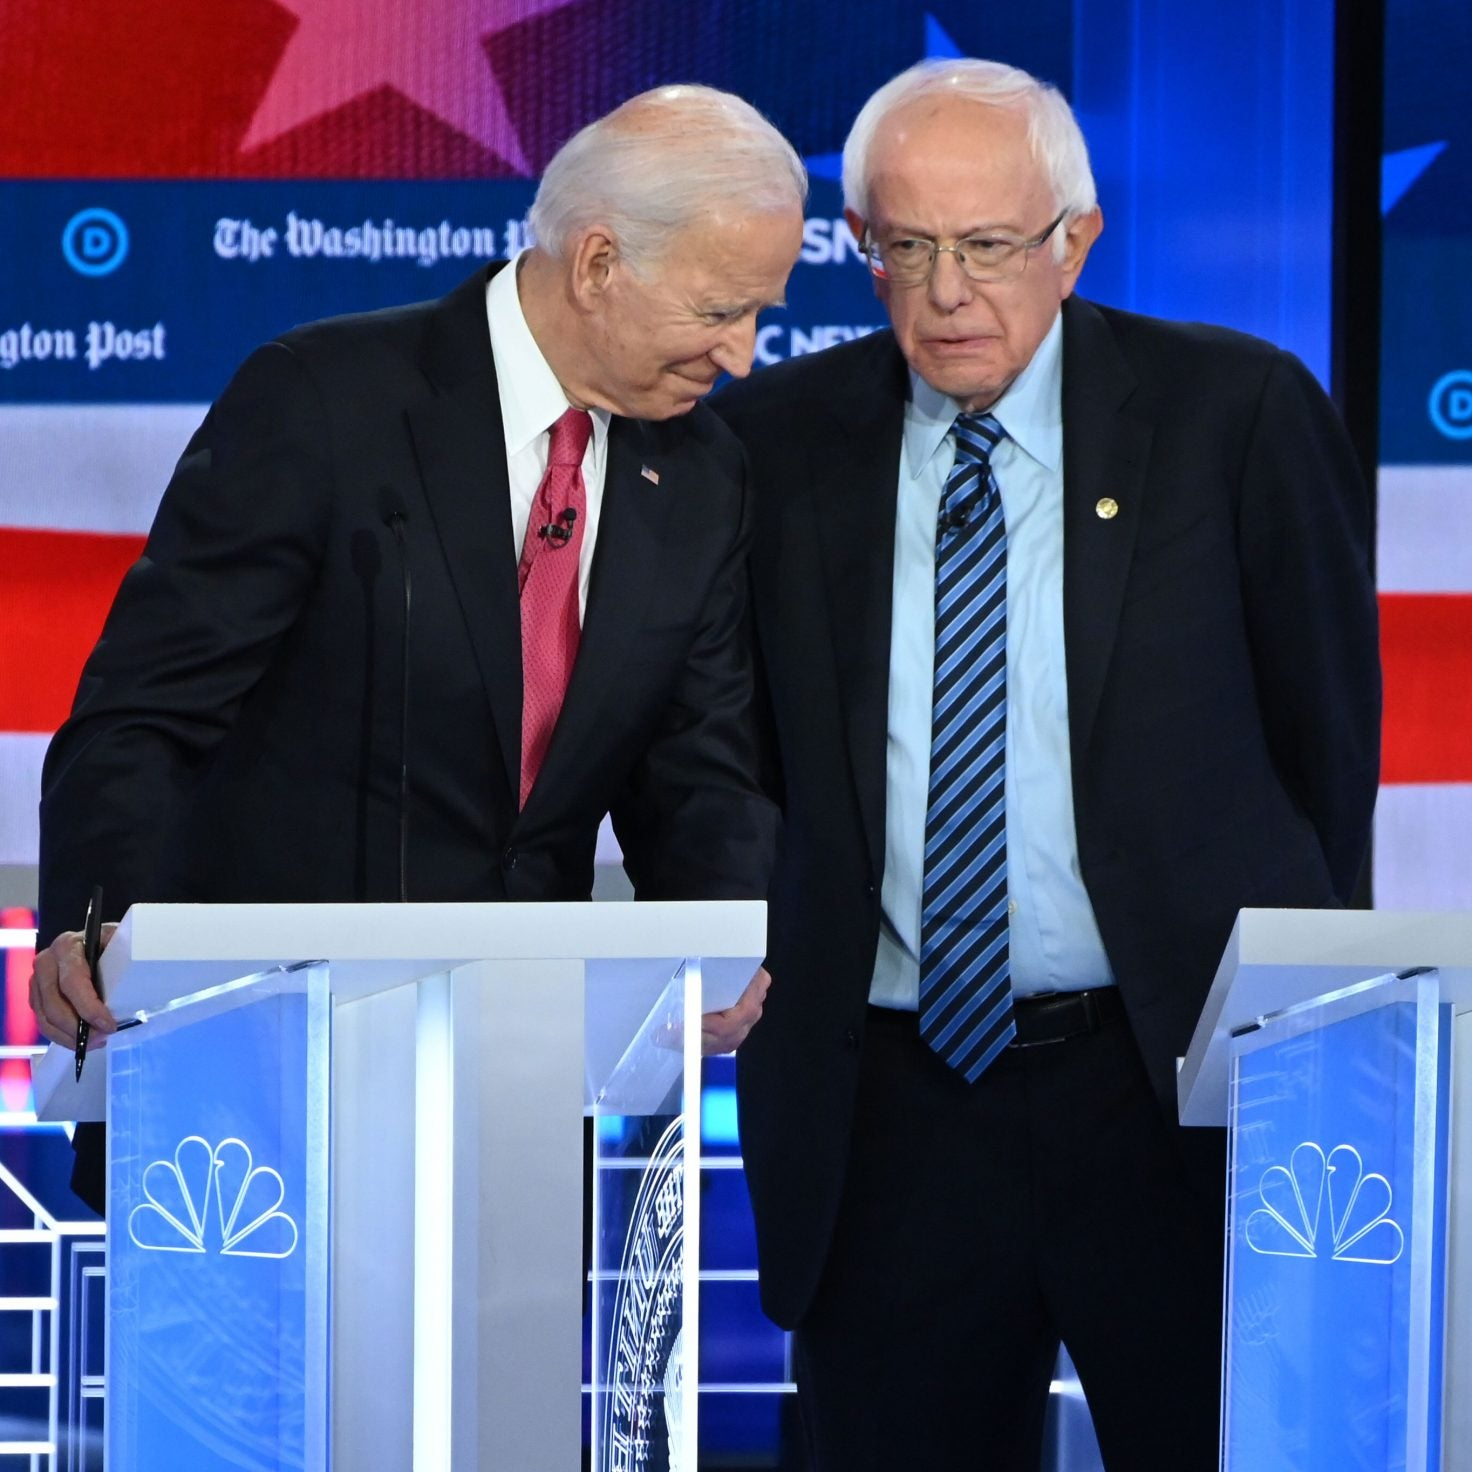 Biden, Sanders Spar Over Social Security